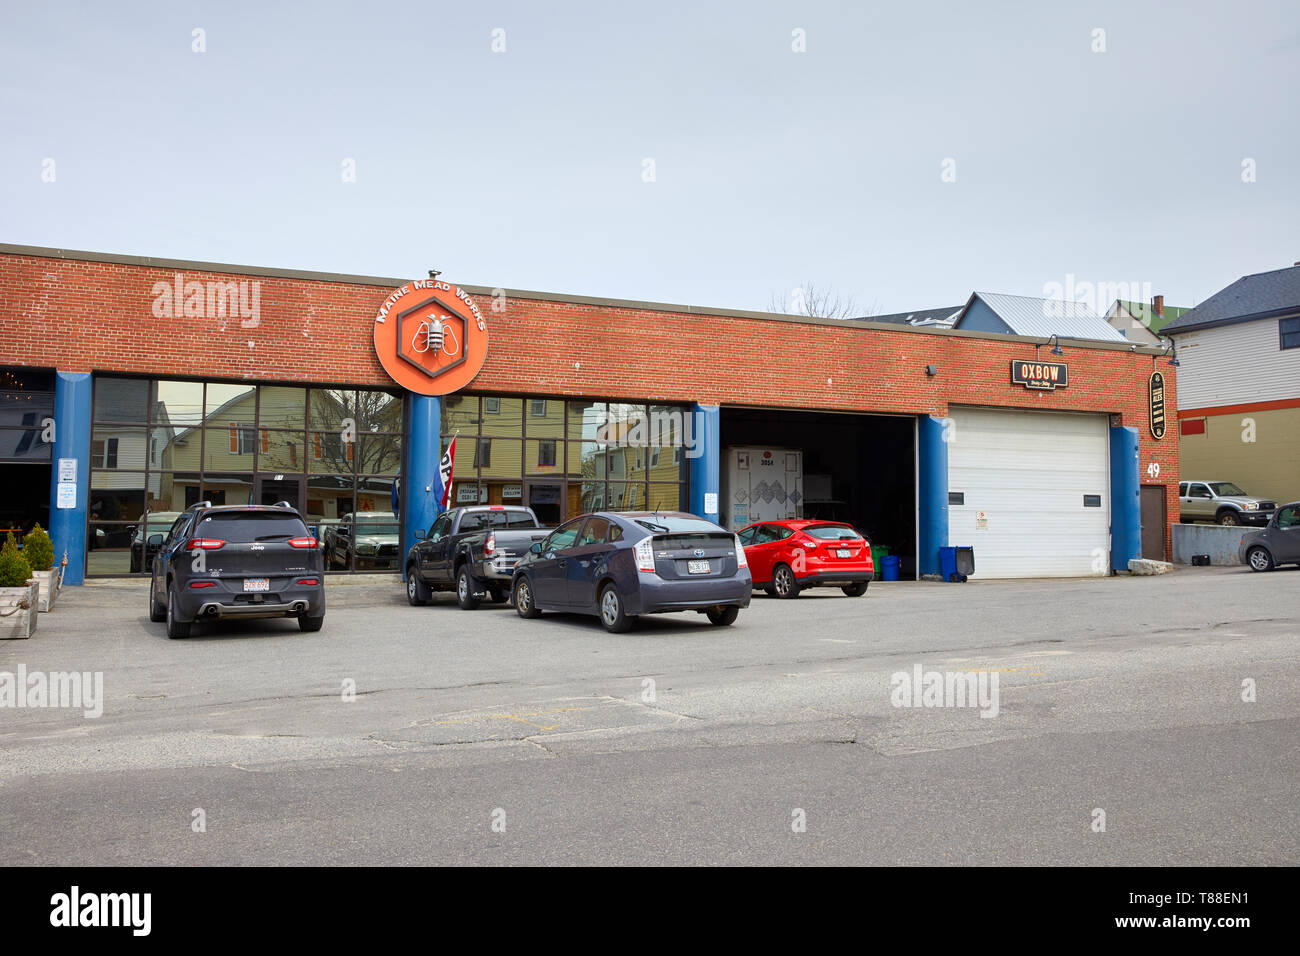 mead high resolution stock photography and images alamy https www alamy com maine mead works on washington avenue in porland maine me united states usa image246049581 html